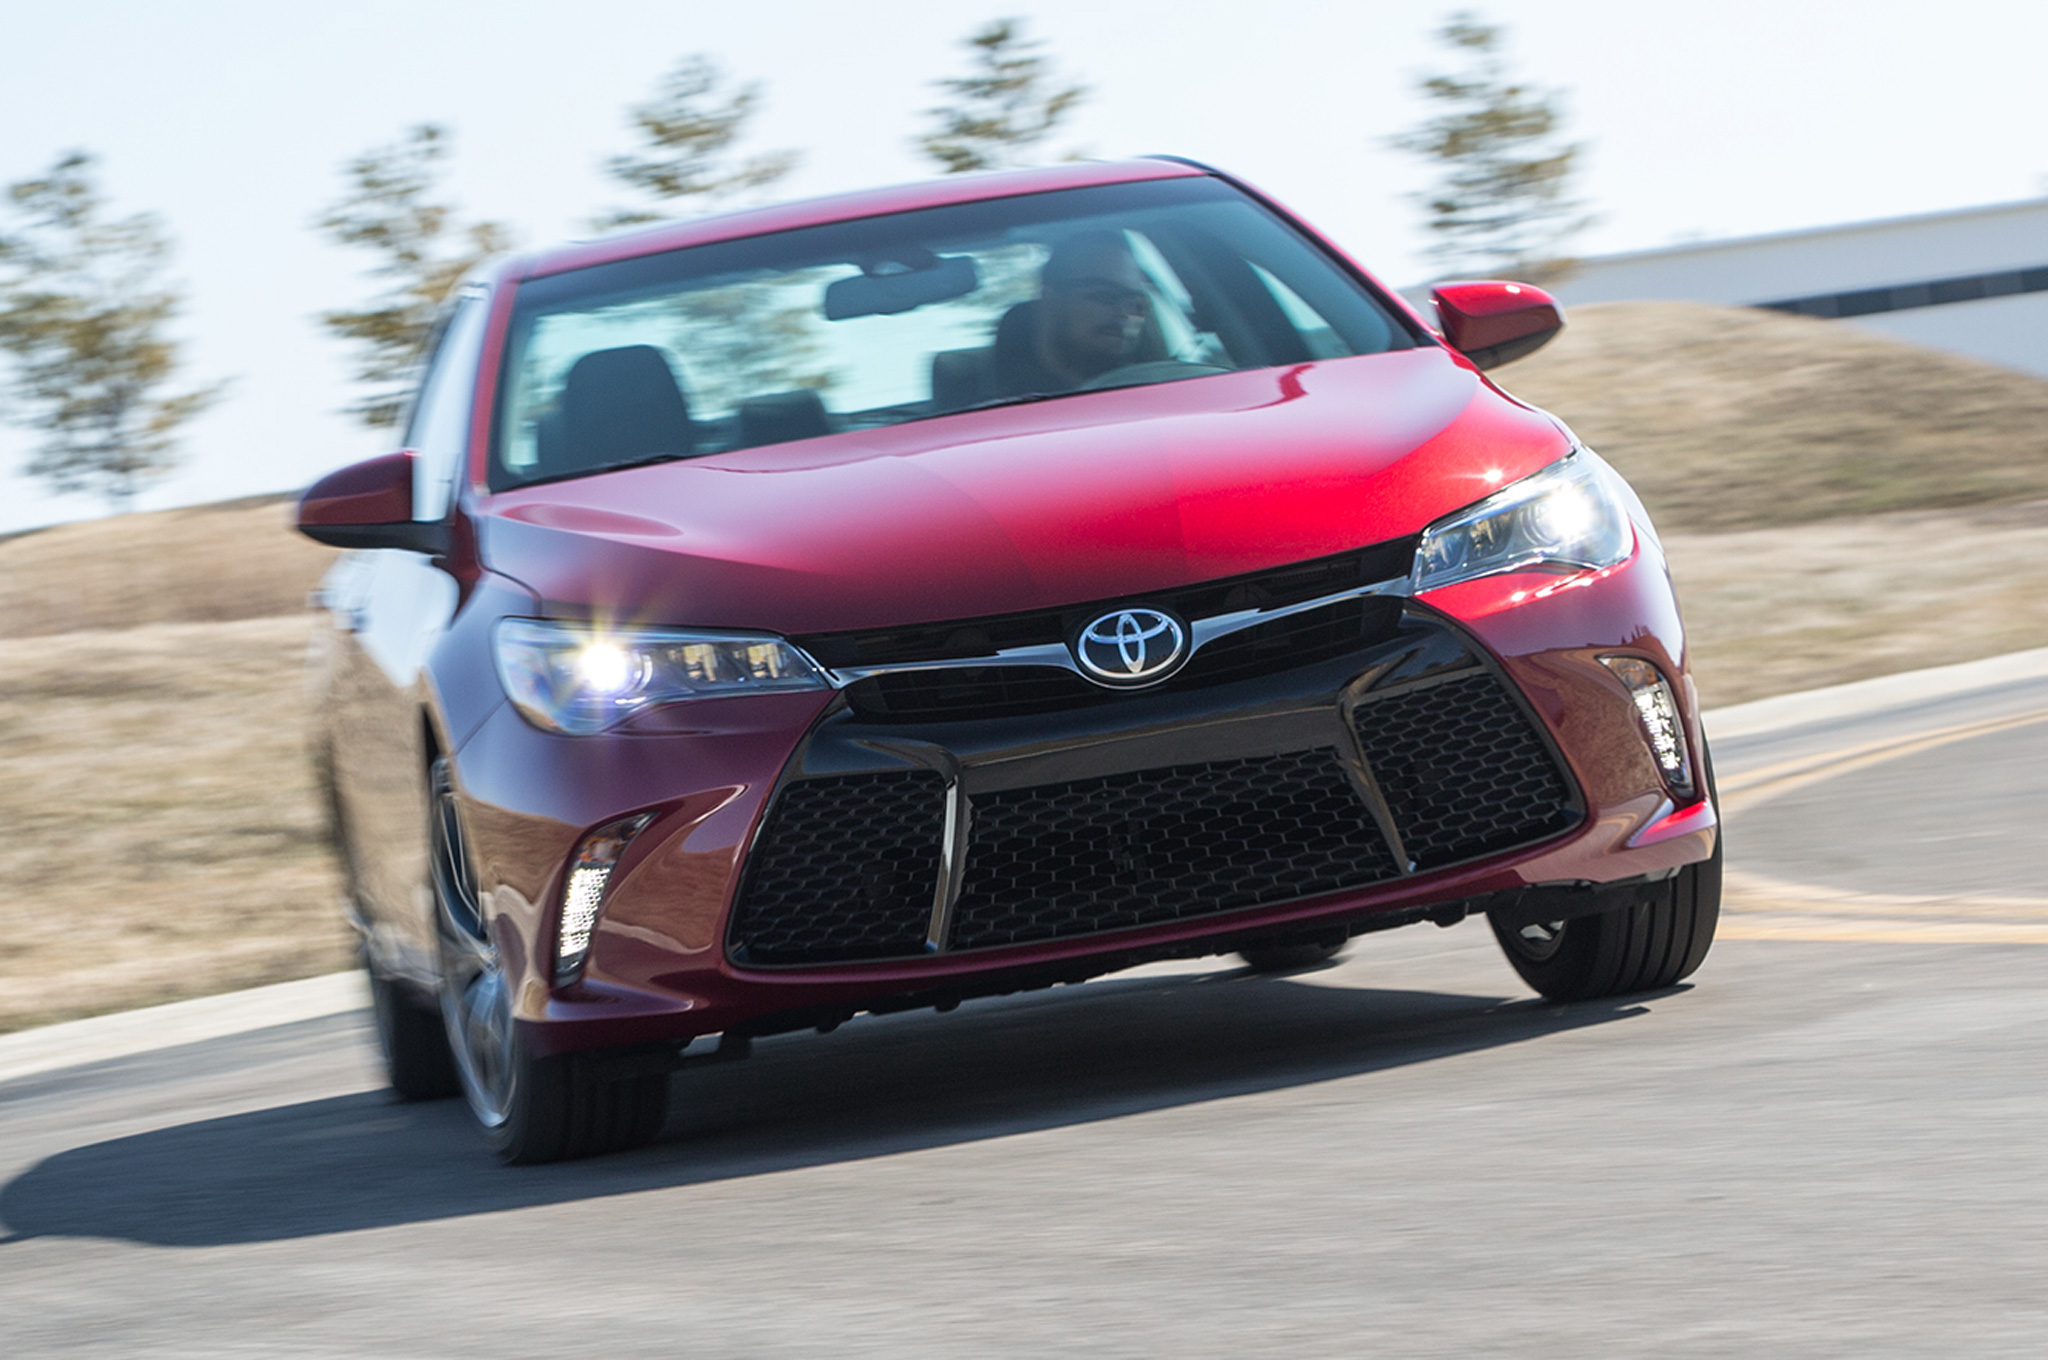 2015 Toyota Camry Front View